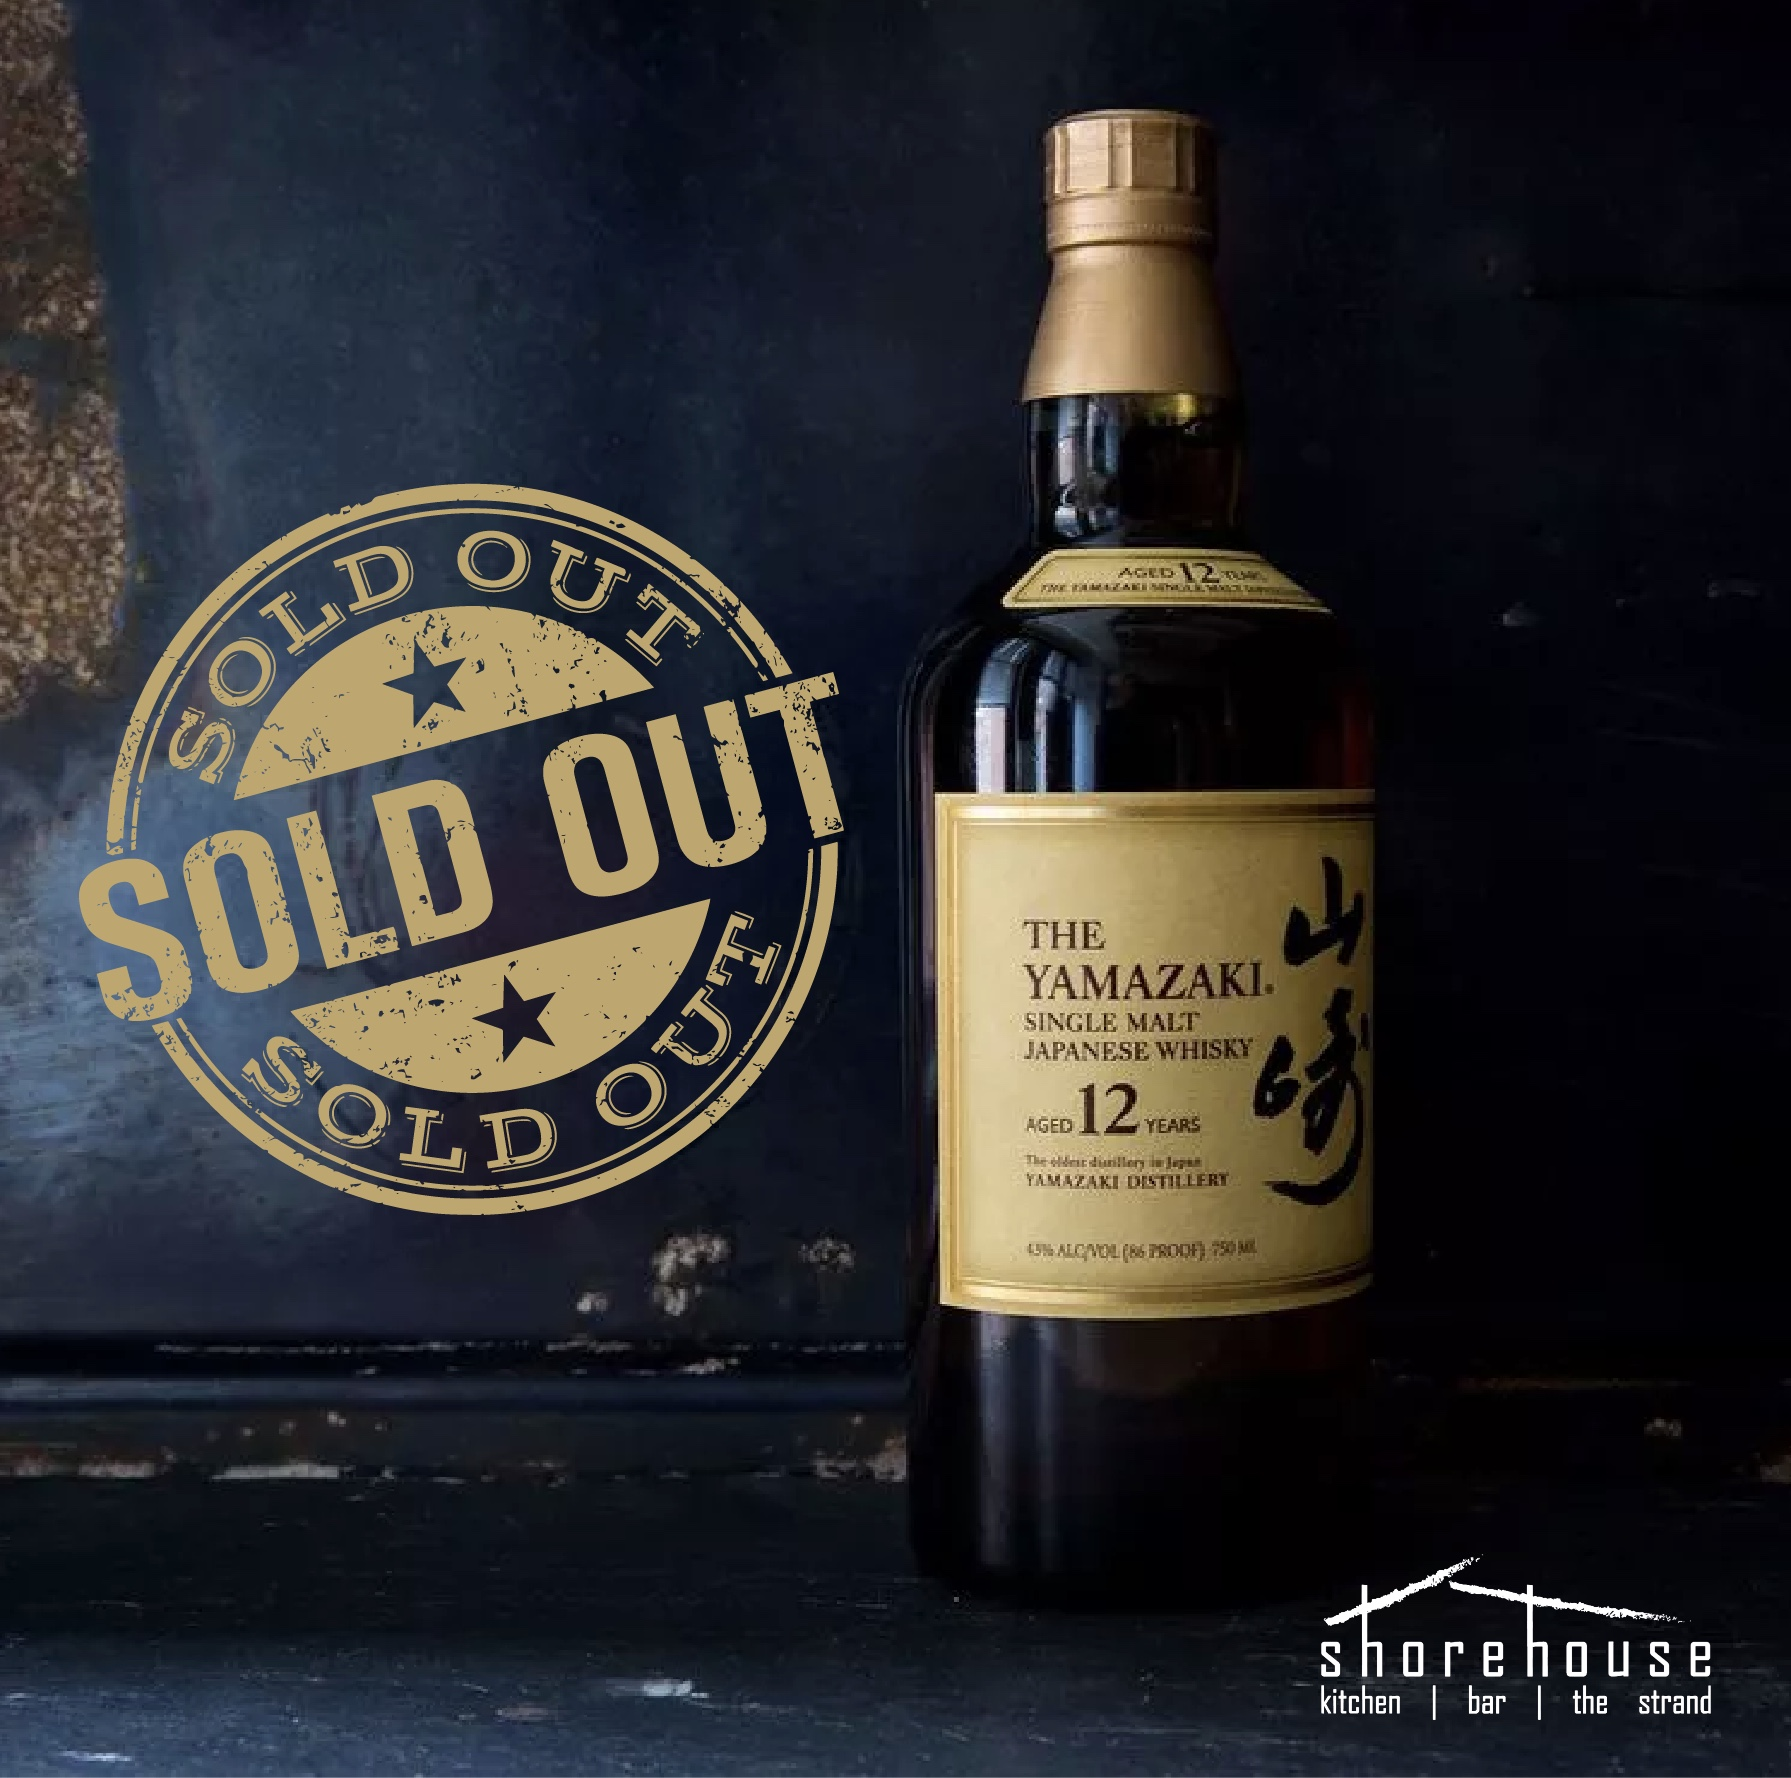 Episode 1 in our Series of Unusual Events saw two sold out Japanese Whisky Dinners!